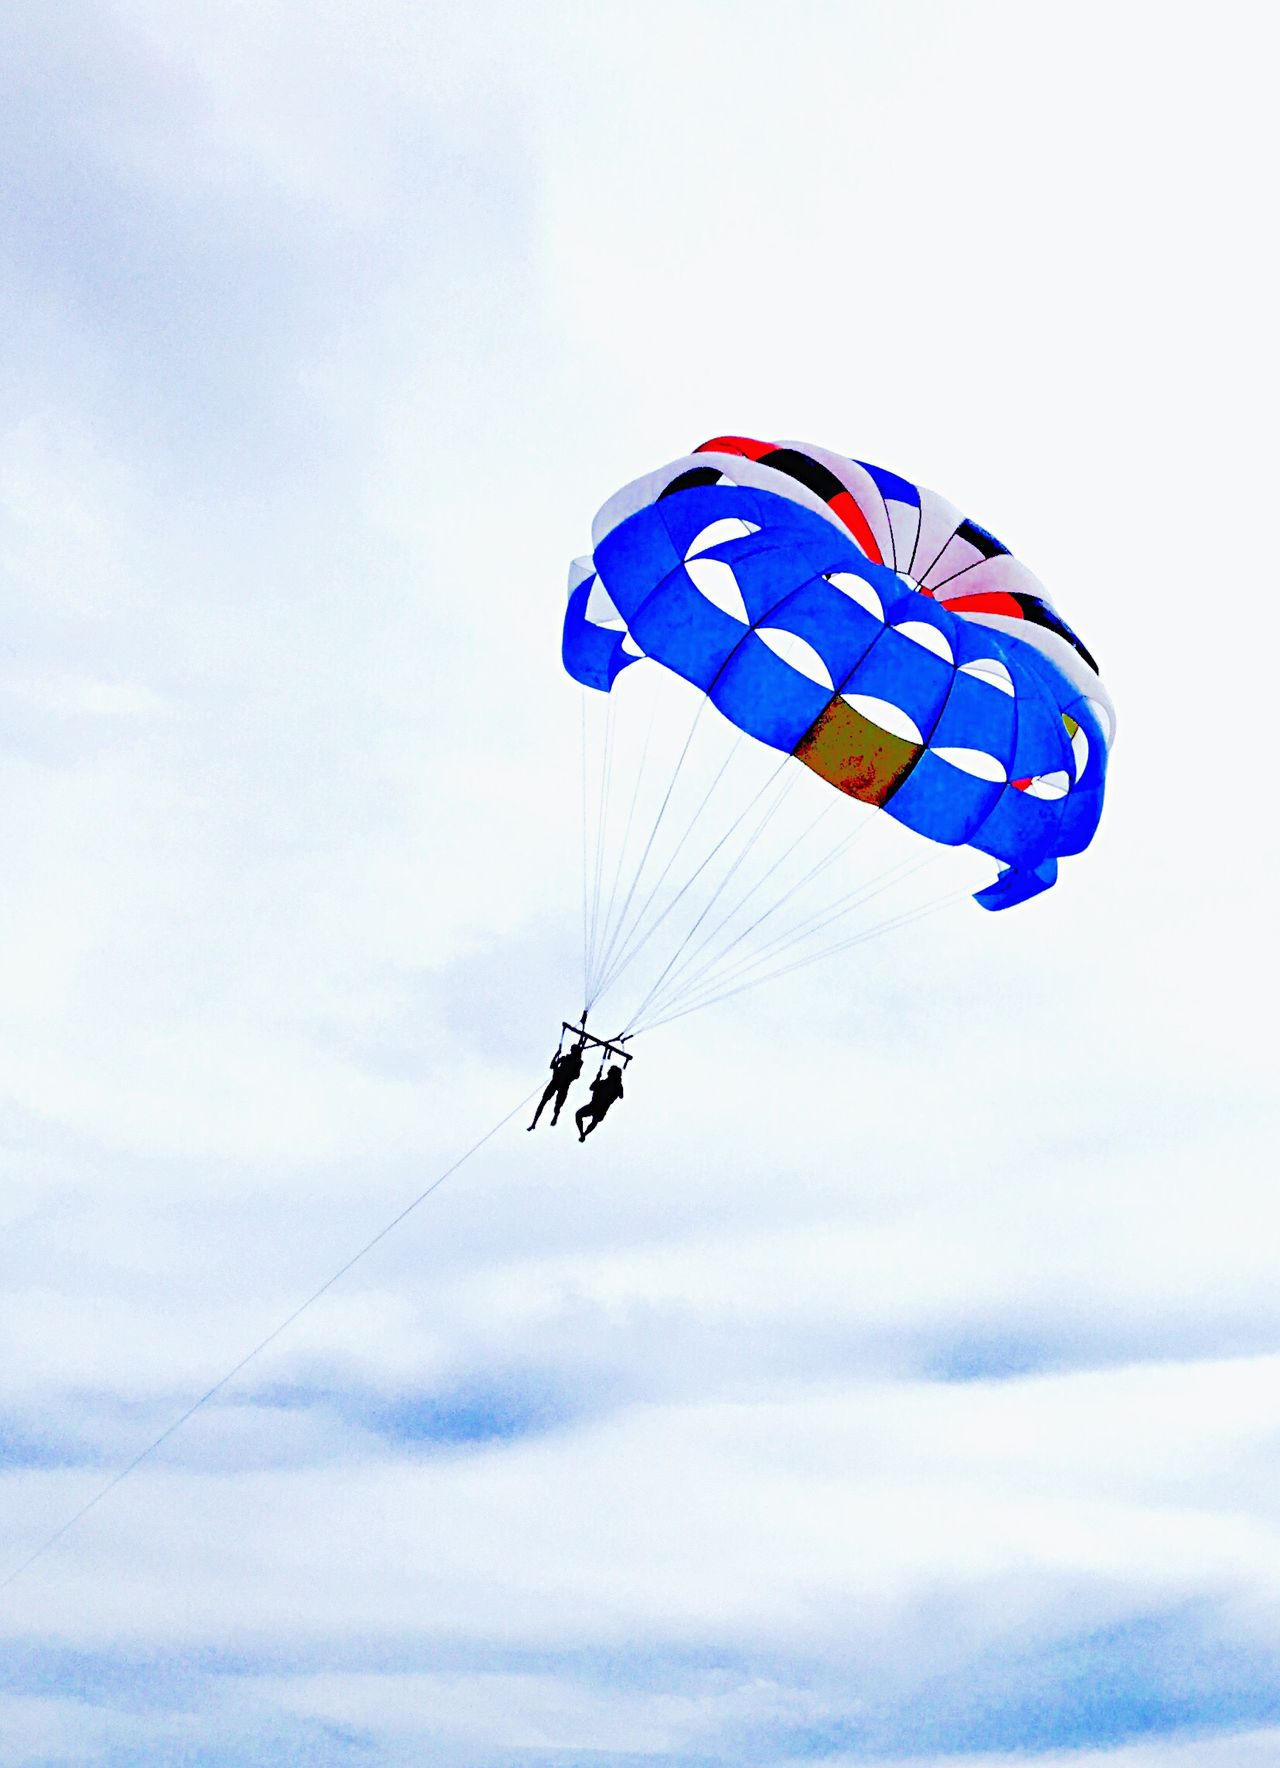 The Color Of Sport Leisure Activity Flying Mid-air Paragliding Lifestyles Adventure Parasailing BLow Angle Viewable person] Bright Colors low angle vieParachutetSkykExtreme SportstFunuCloud - SkykEnjoymentnDayaSkydivingnBlueuOutdoorsrWeekend ActivitieseVacationsns